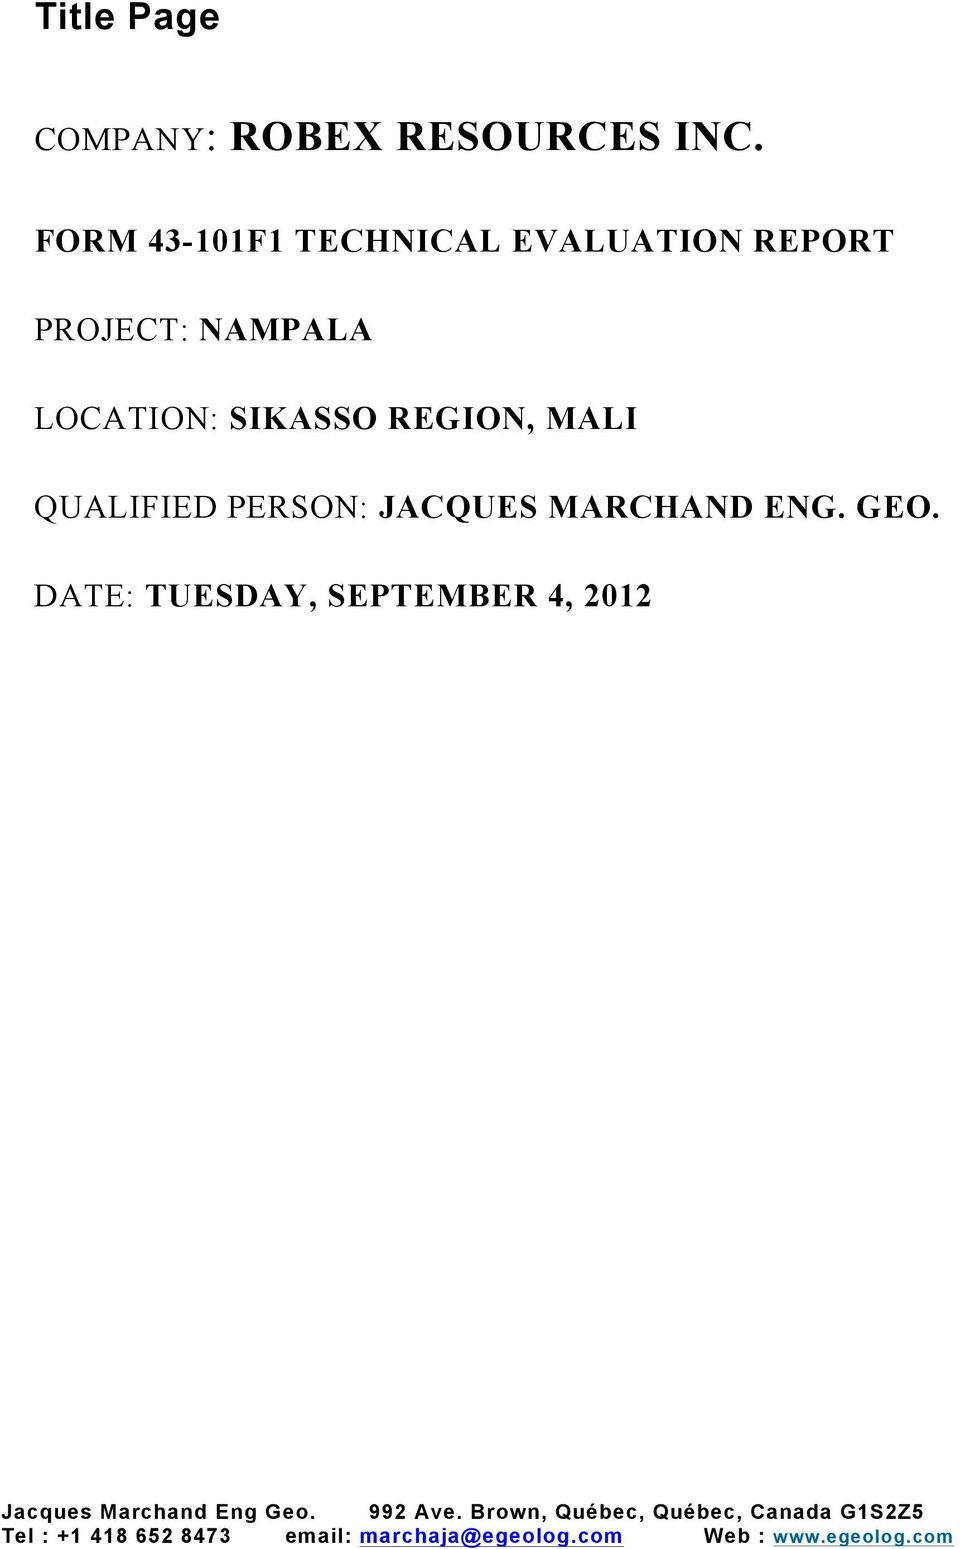 MALI QUALIFIED PERSON: JACQUES MARCHAND ENG. GEO.